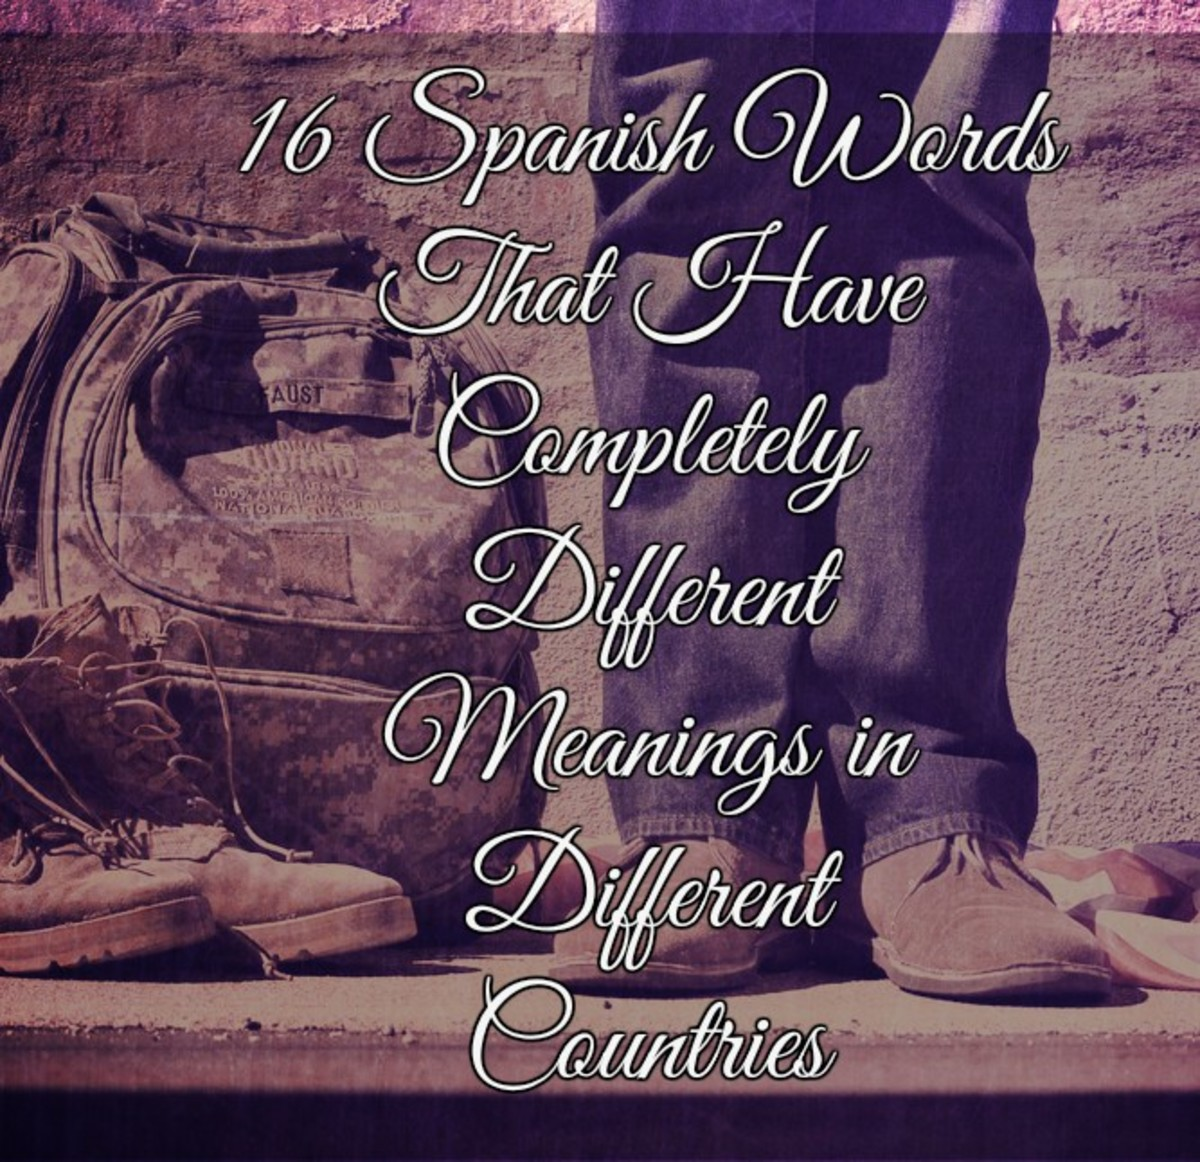 16-spanish-words-that-have-different-meanings-in-different-countries